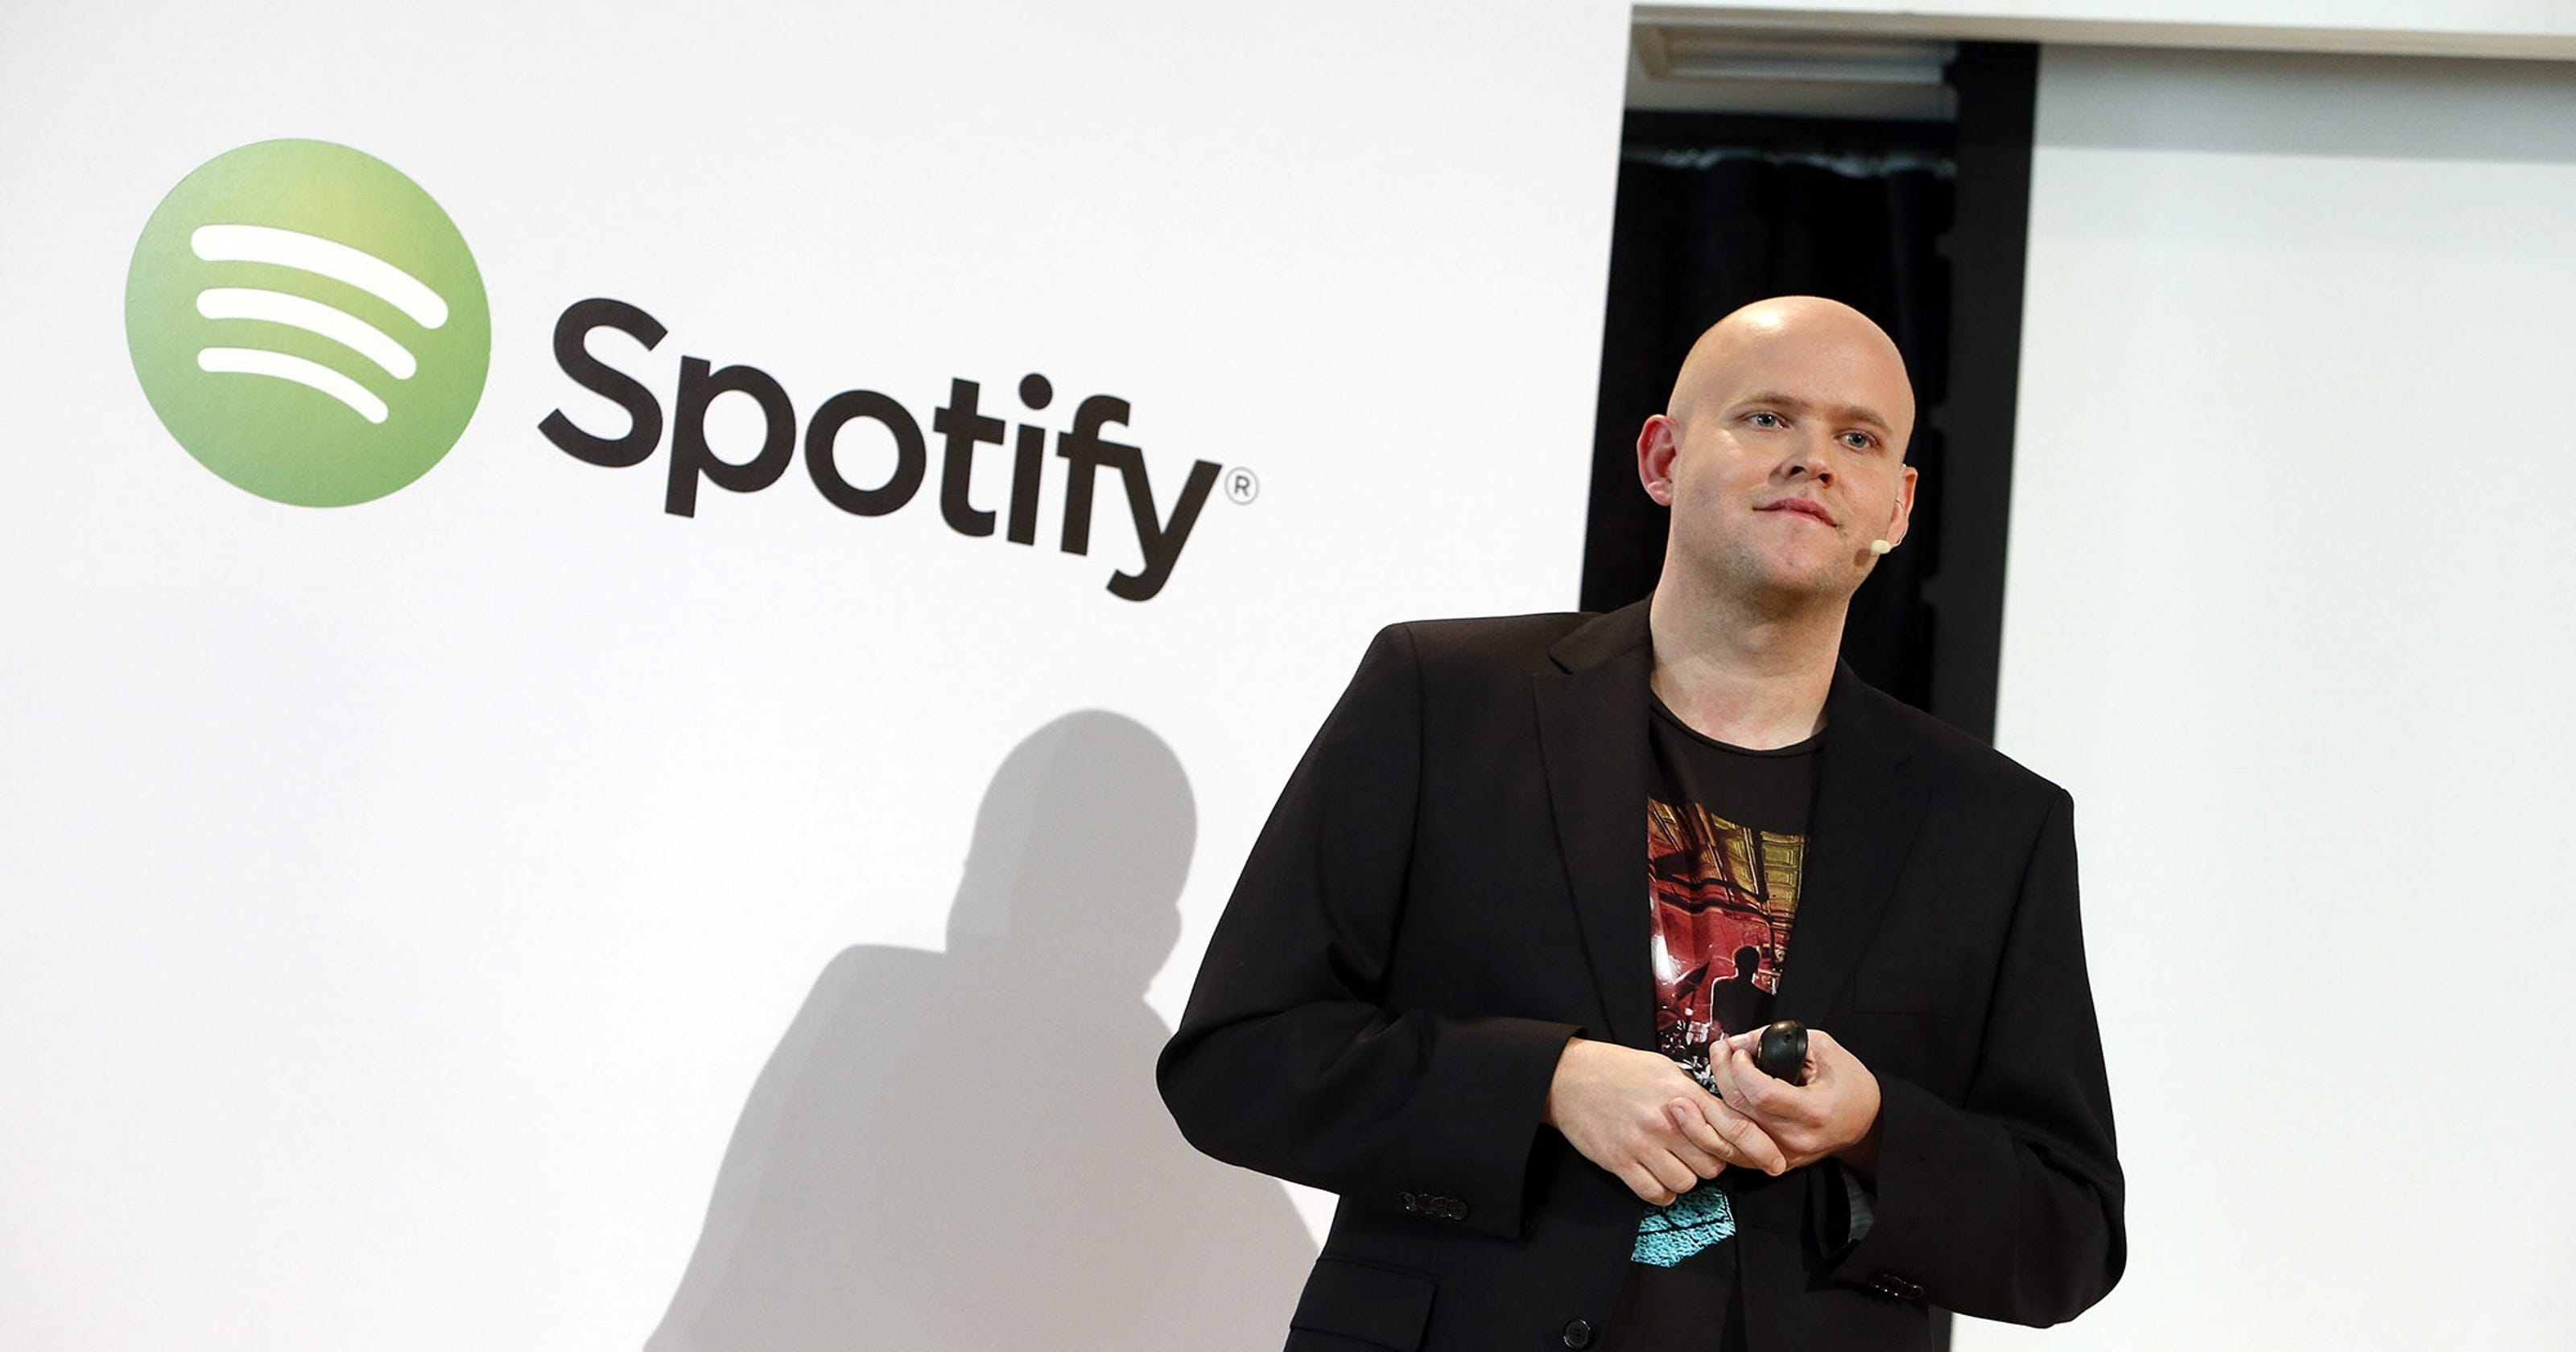 Spotify CEO to Taylor Swift: Isn't $6 million enough?